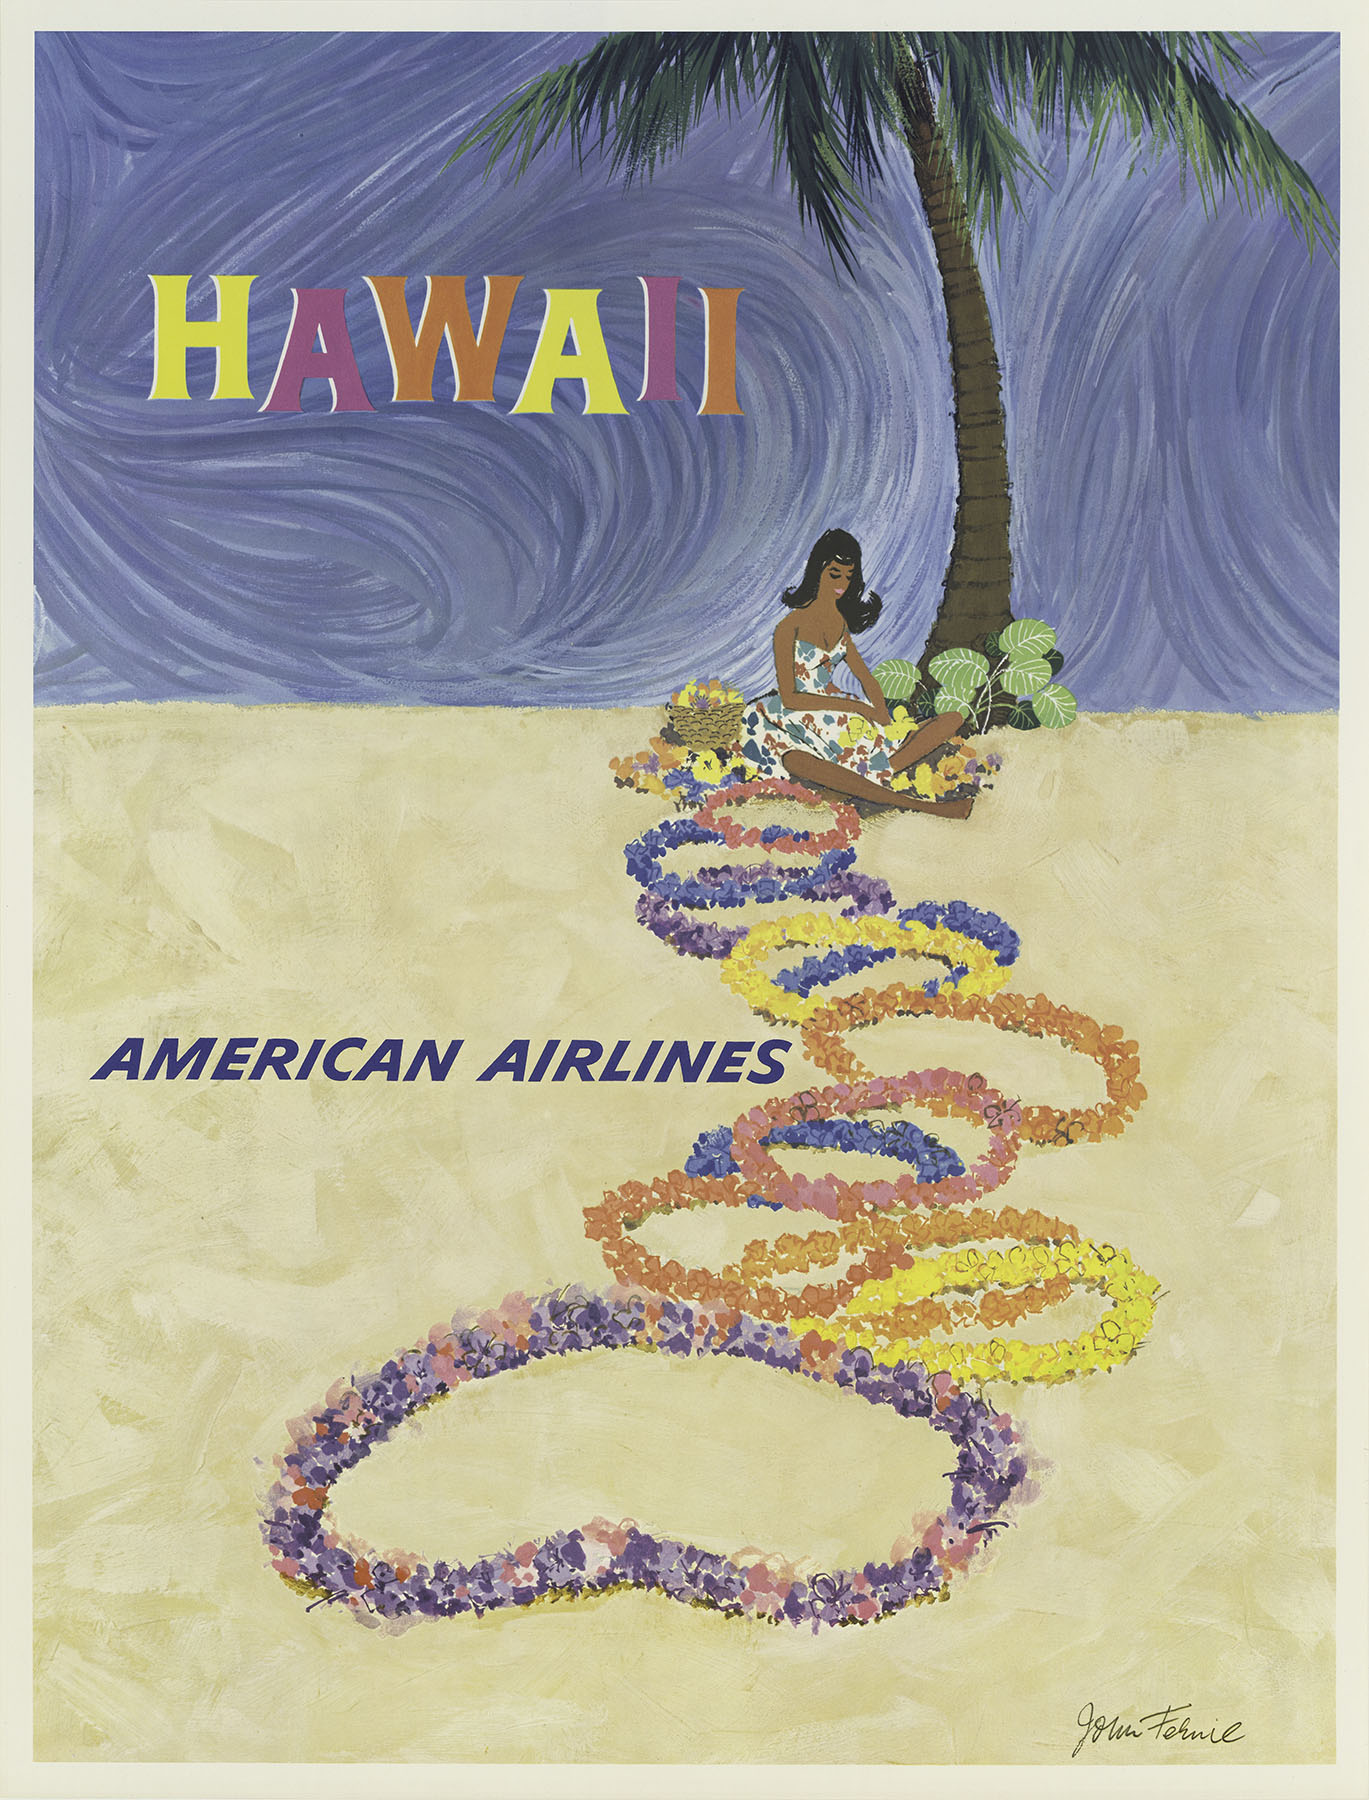 American Airline poster John Fernie in 1950s